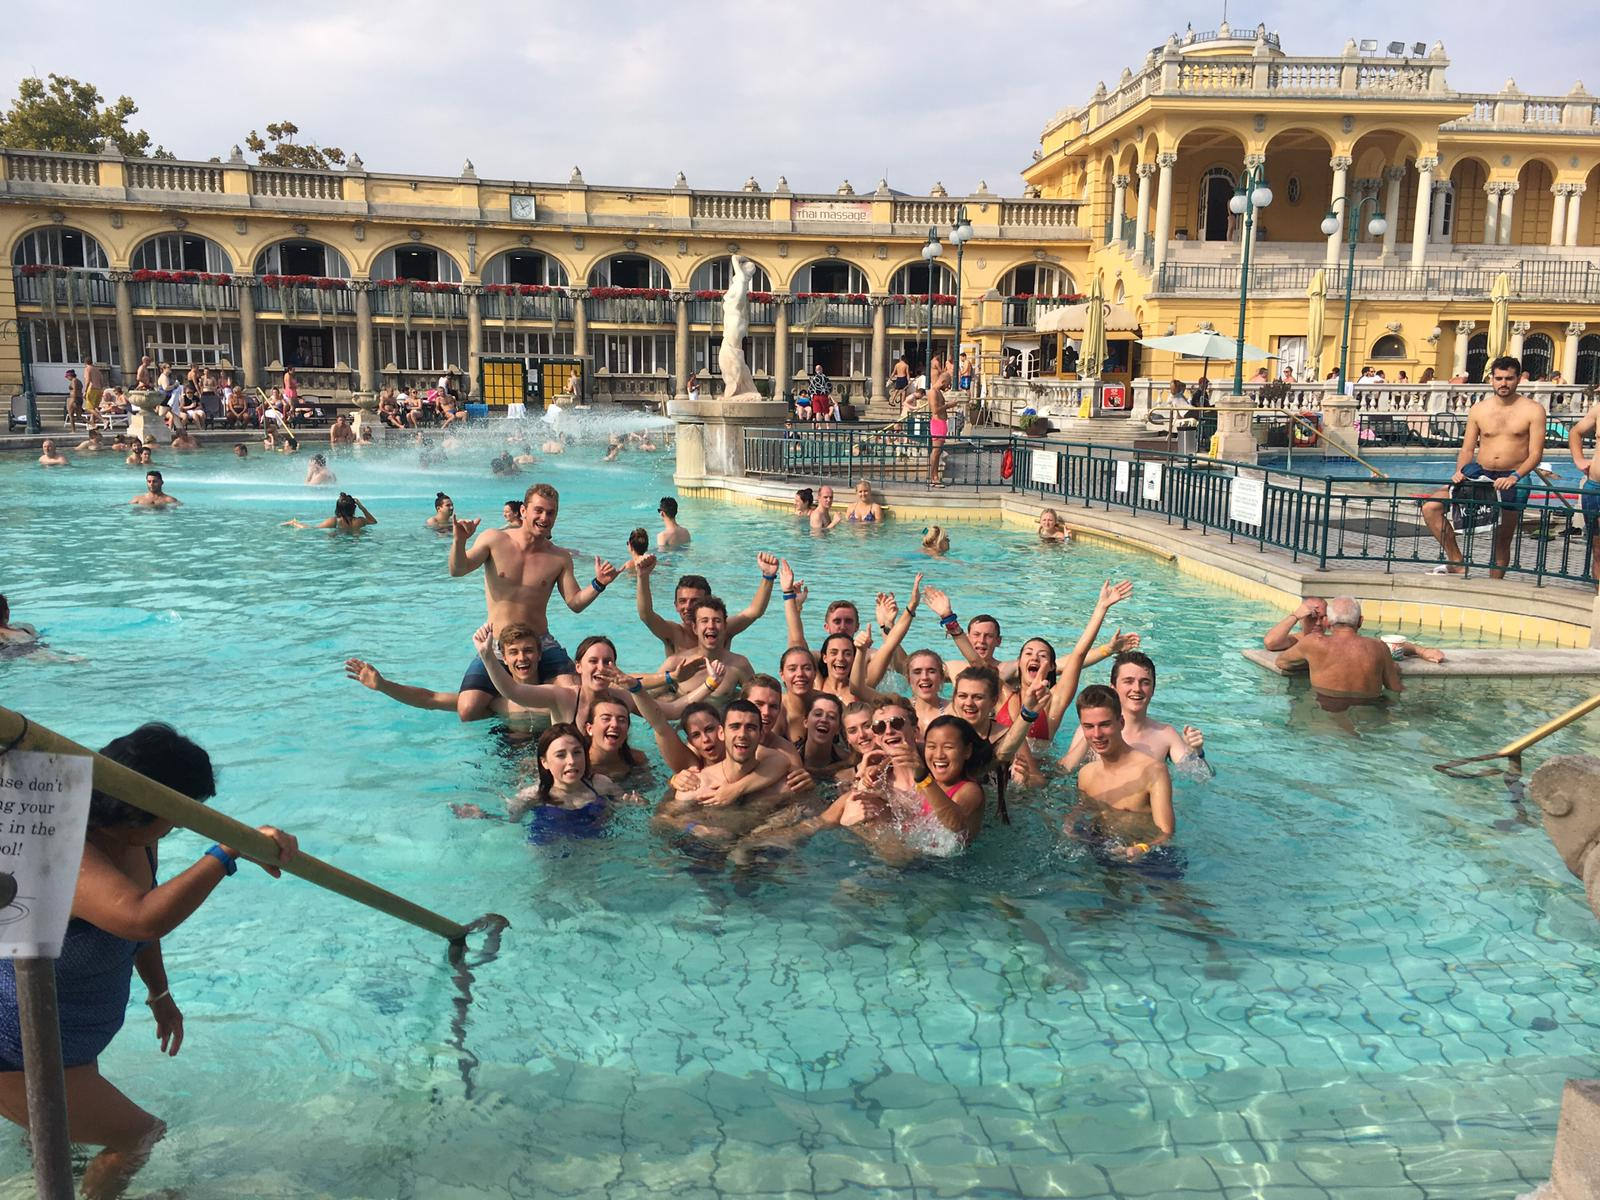 Post-marathon relaxing at the Szechenyi Baths.